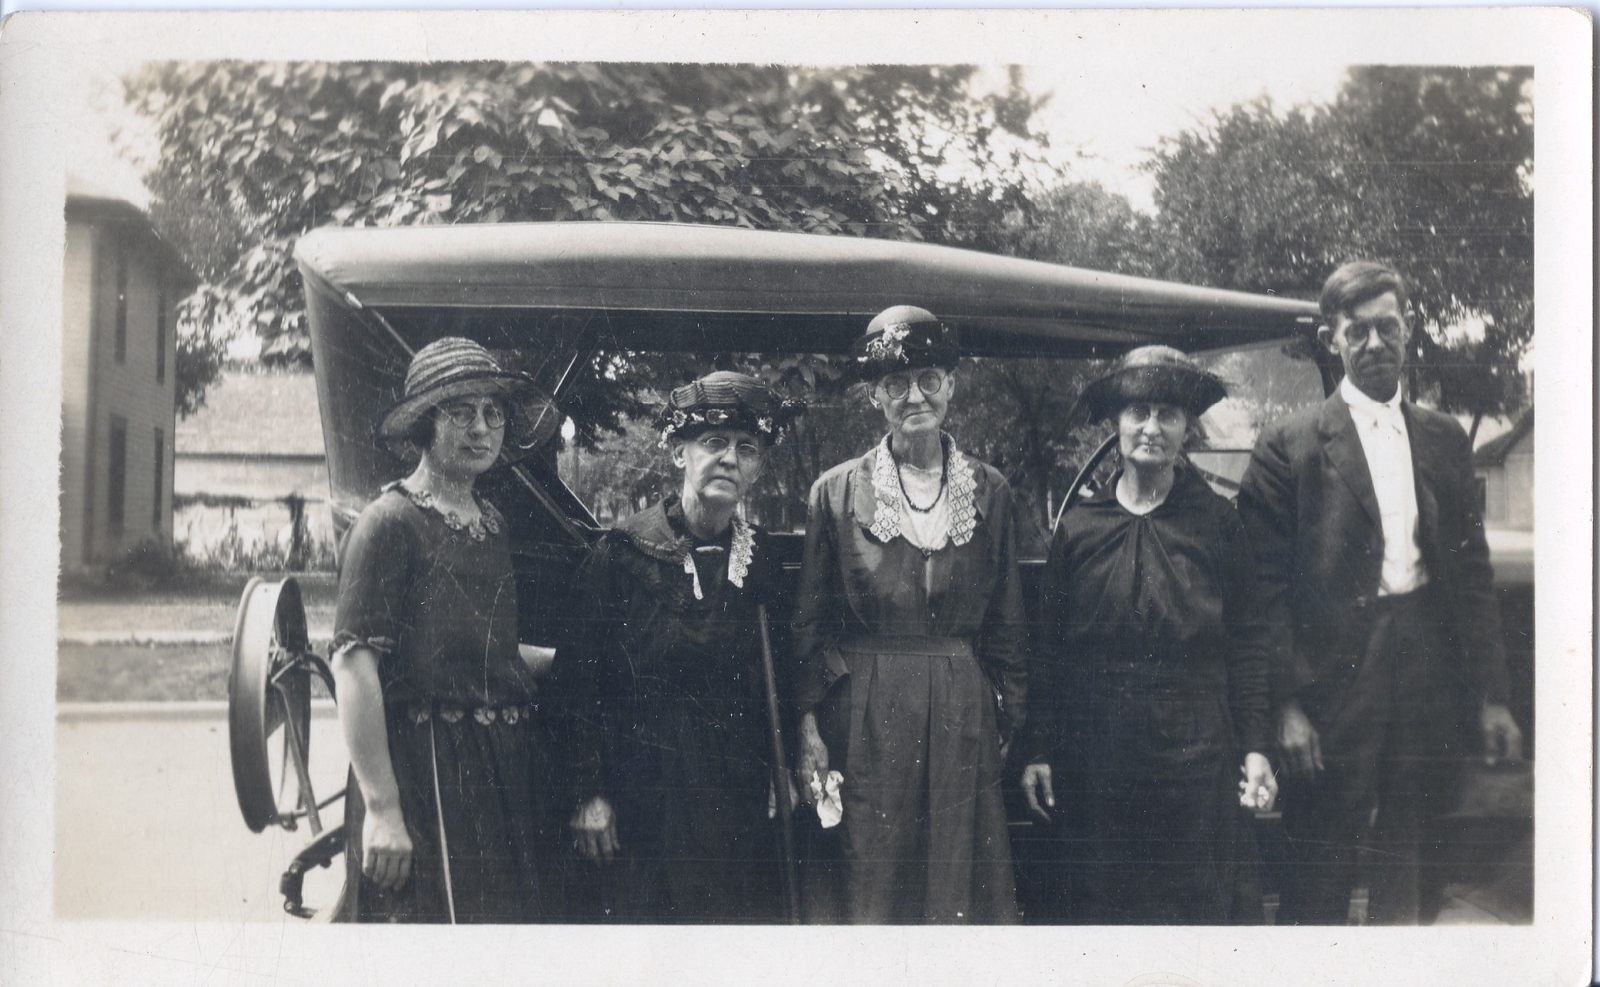 L-R Irene (Kimmell) Grace,Sarah Black,Margaret Magill Kimmell,unknown,Edward